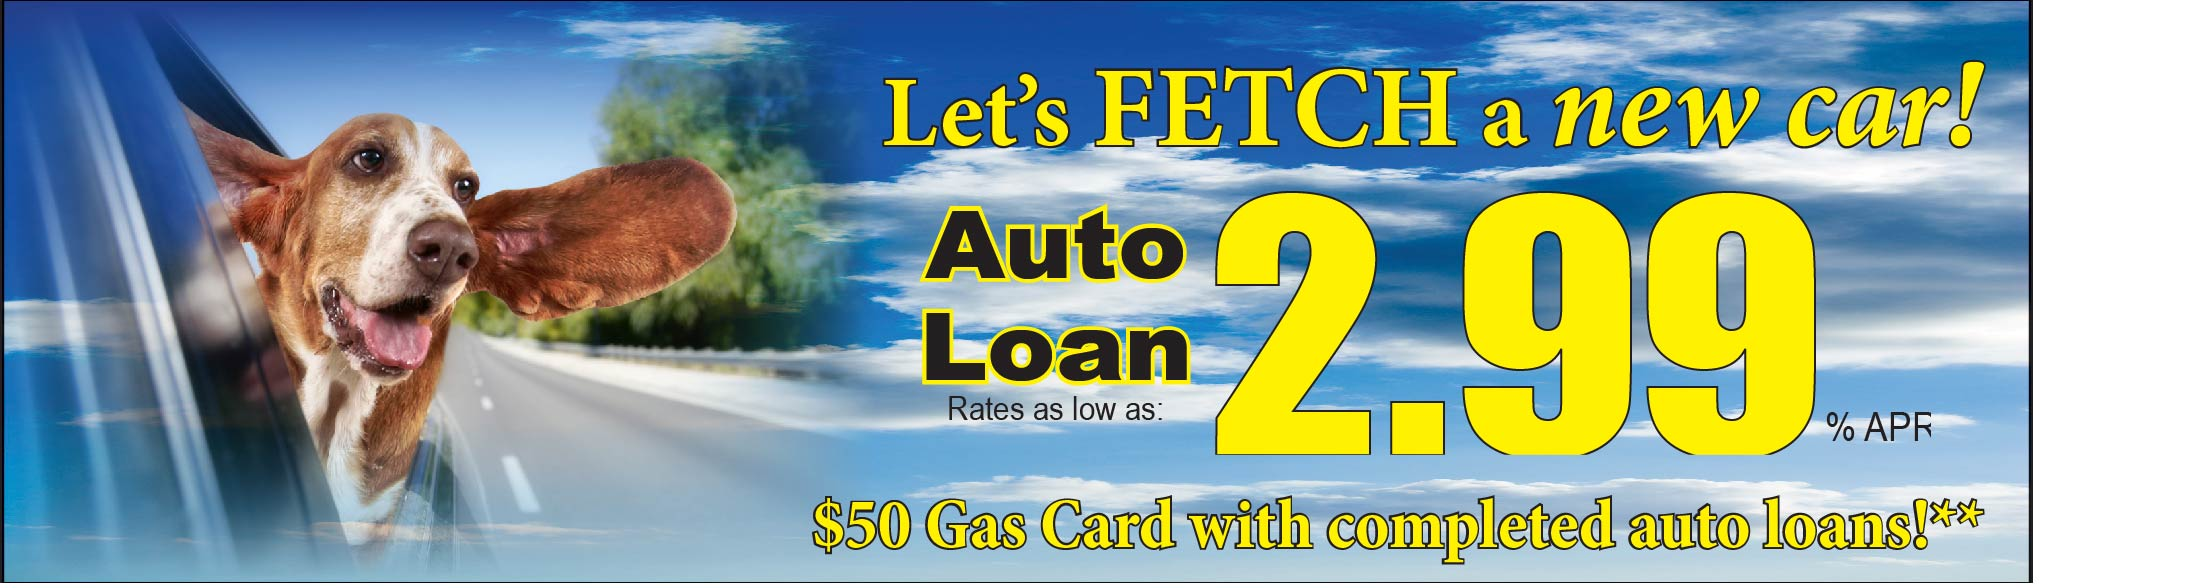 Fetch a great auto loan rate